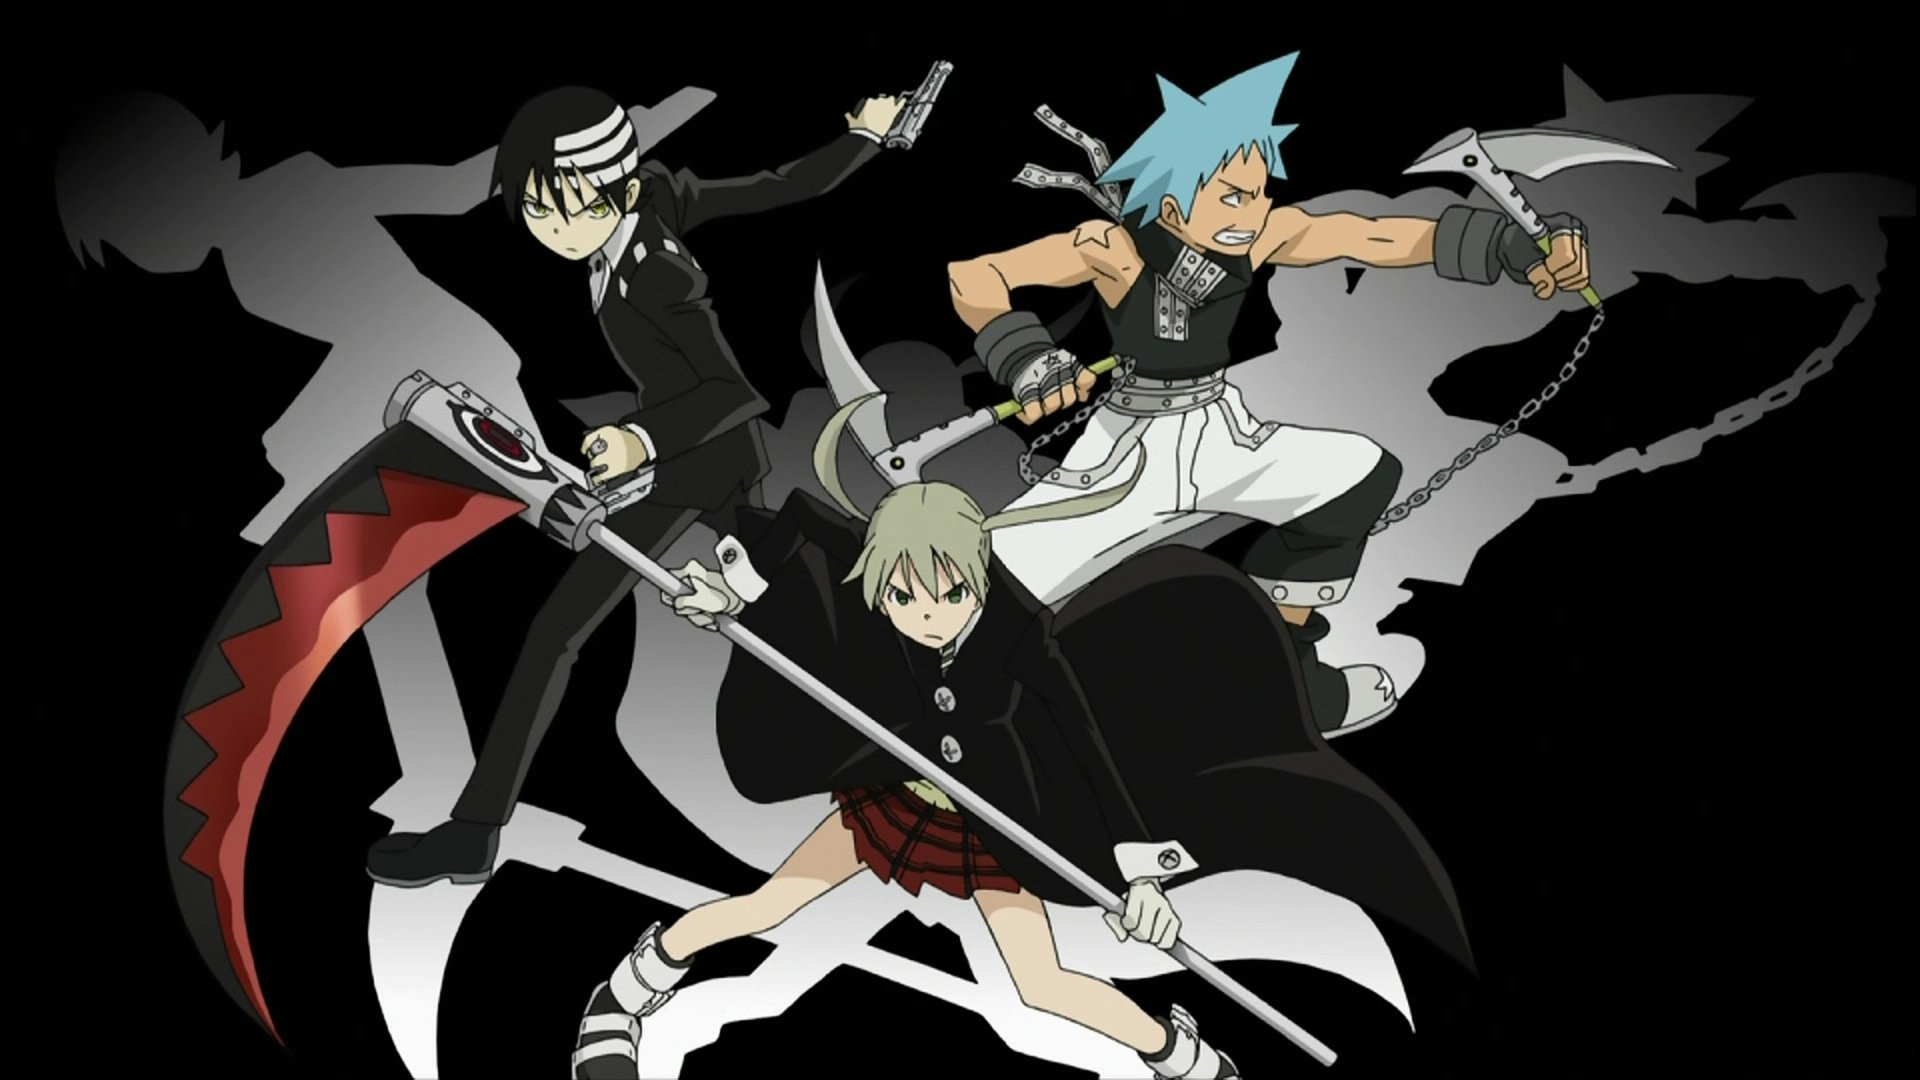 Res: 1920x1080, Soul Eater Wallpapers 19 - 1920 X 1080